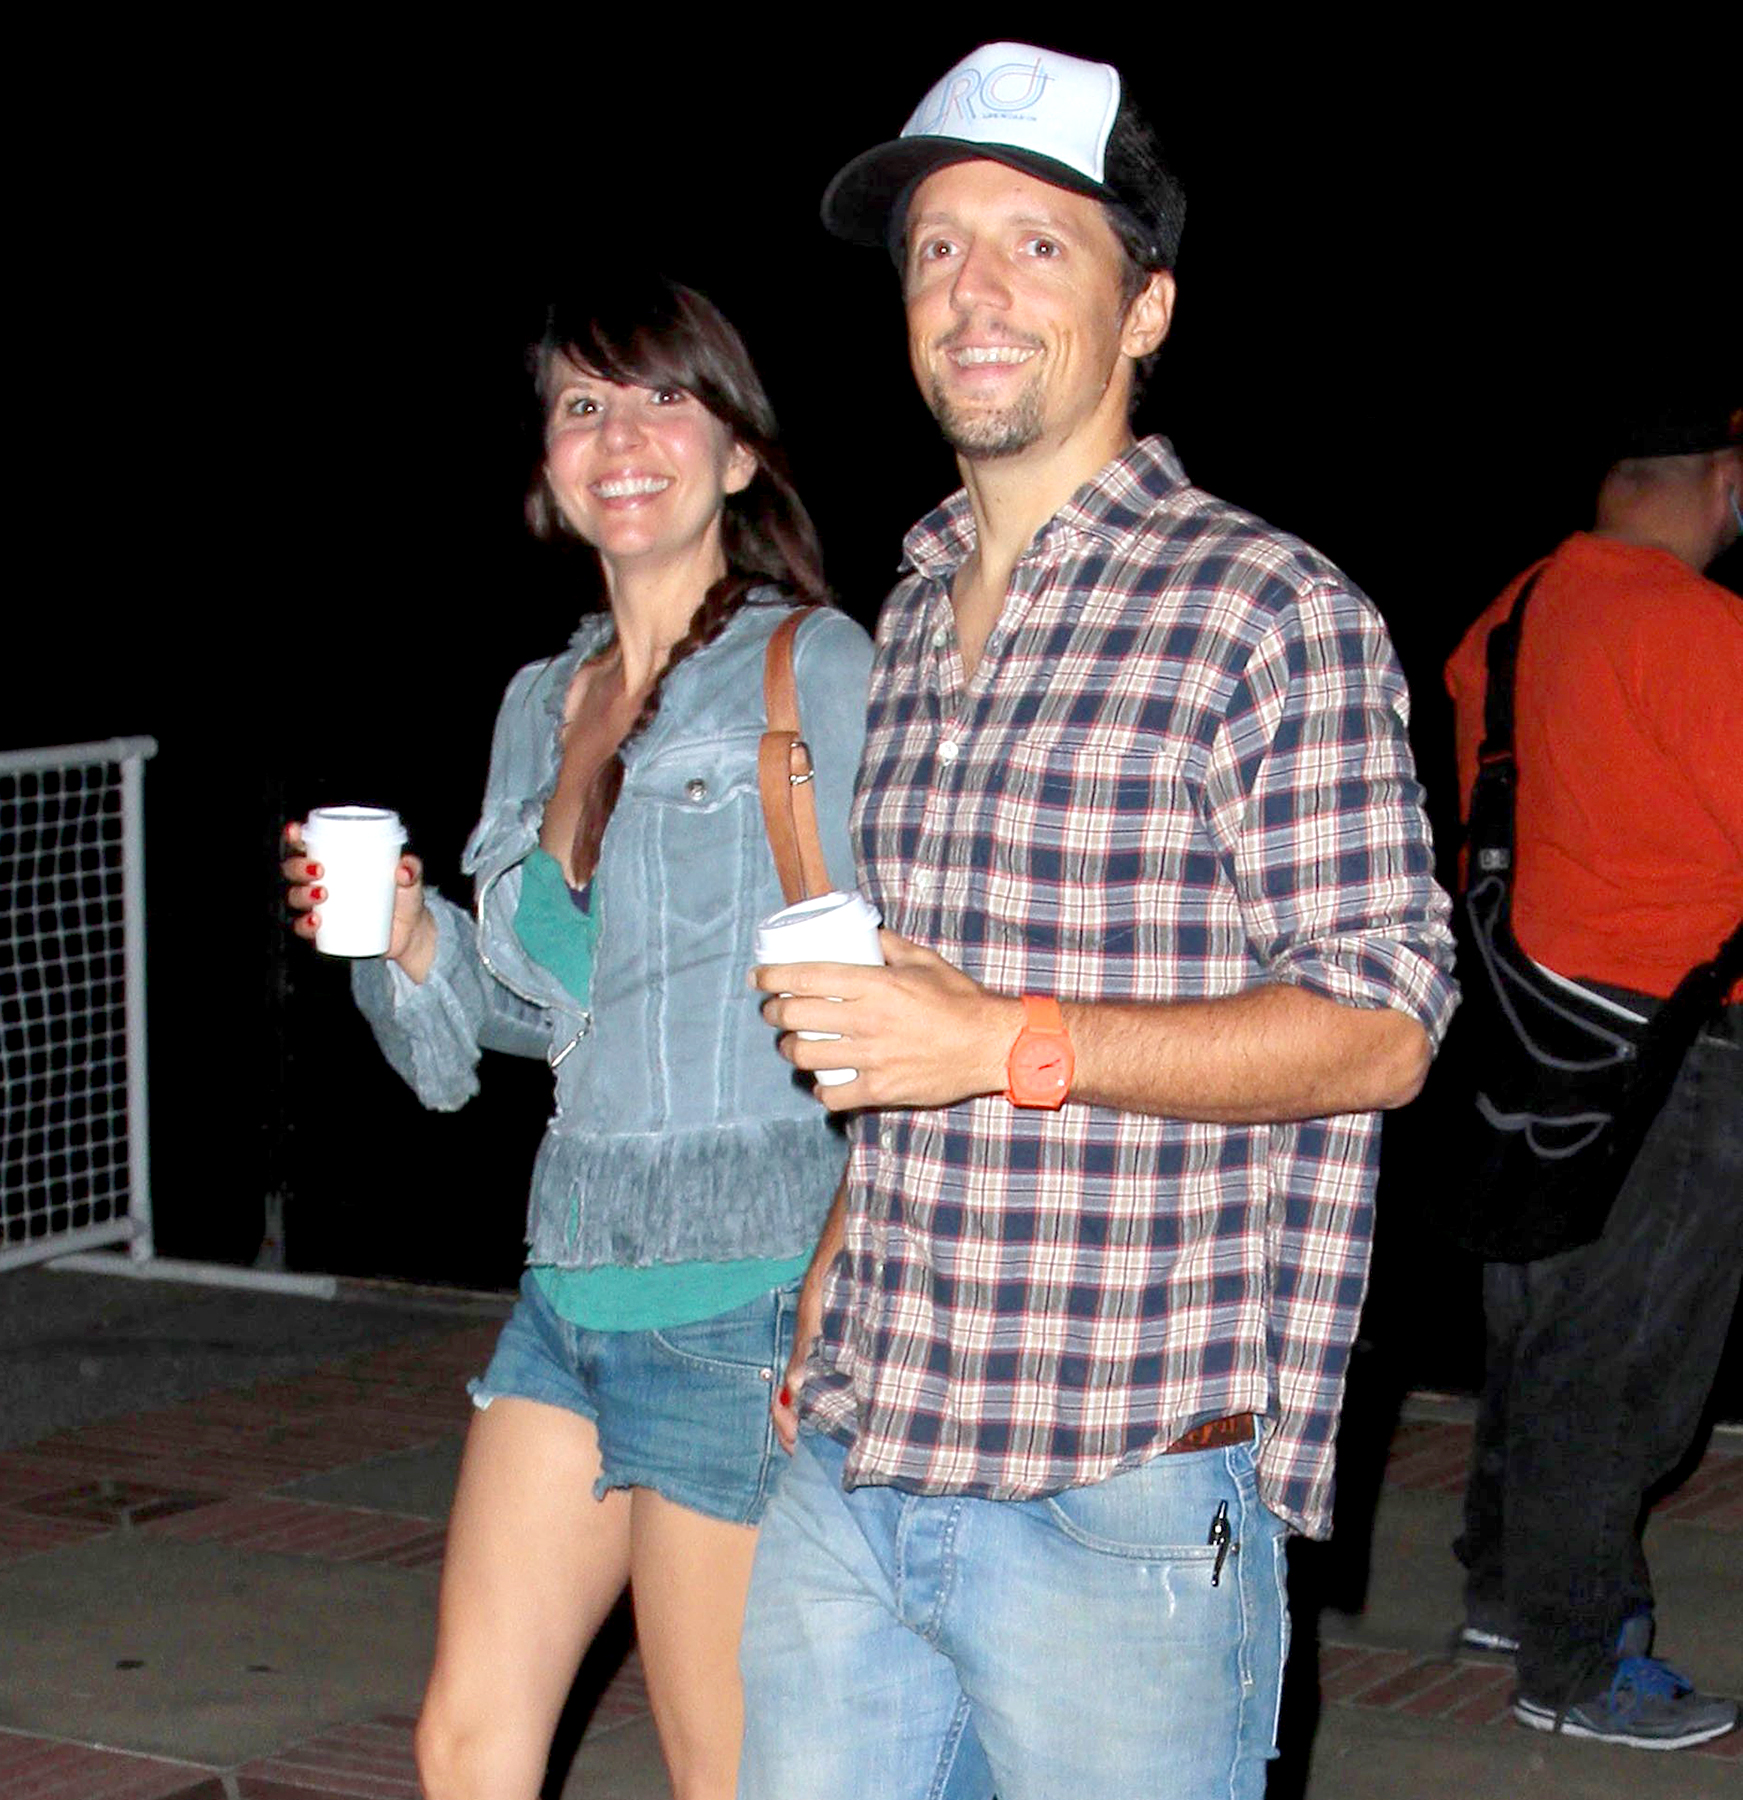 Jason Mraz and Tina Carano